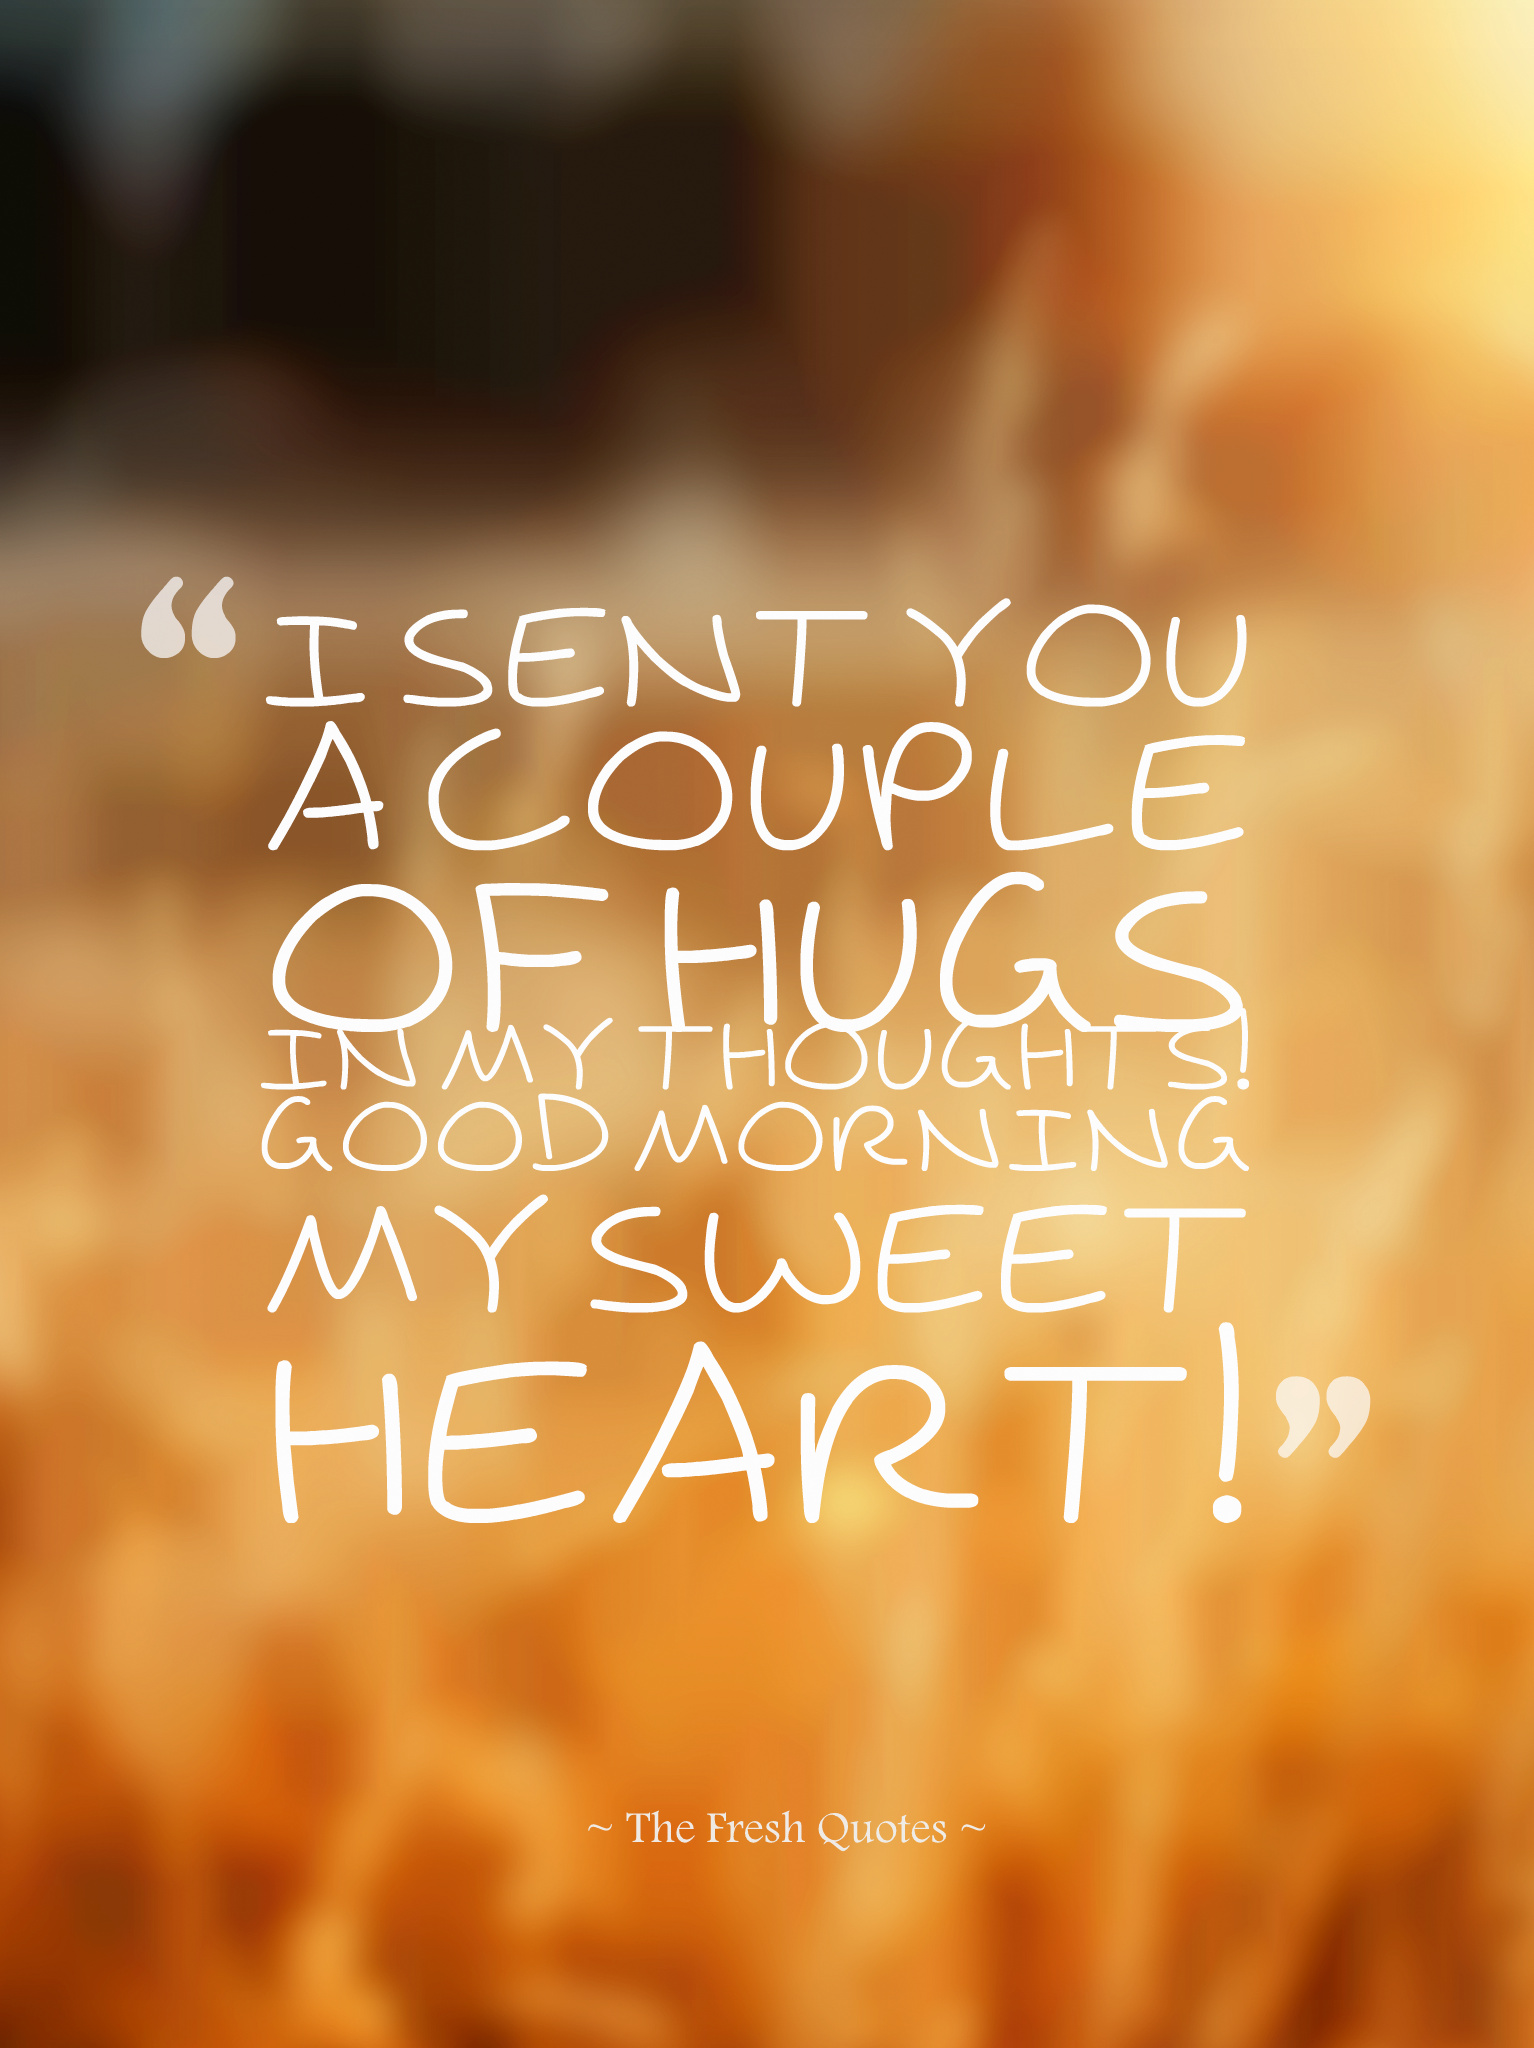 Cute Romantic Good Morning Wishes with Beautiful Images - Quotes